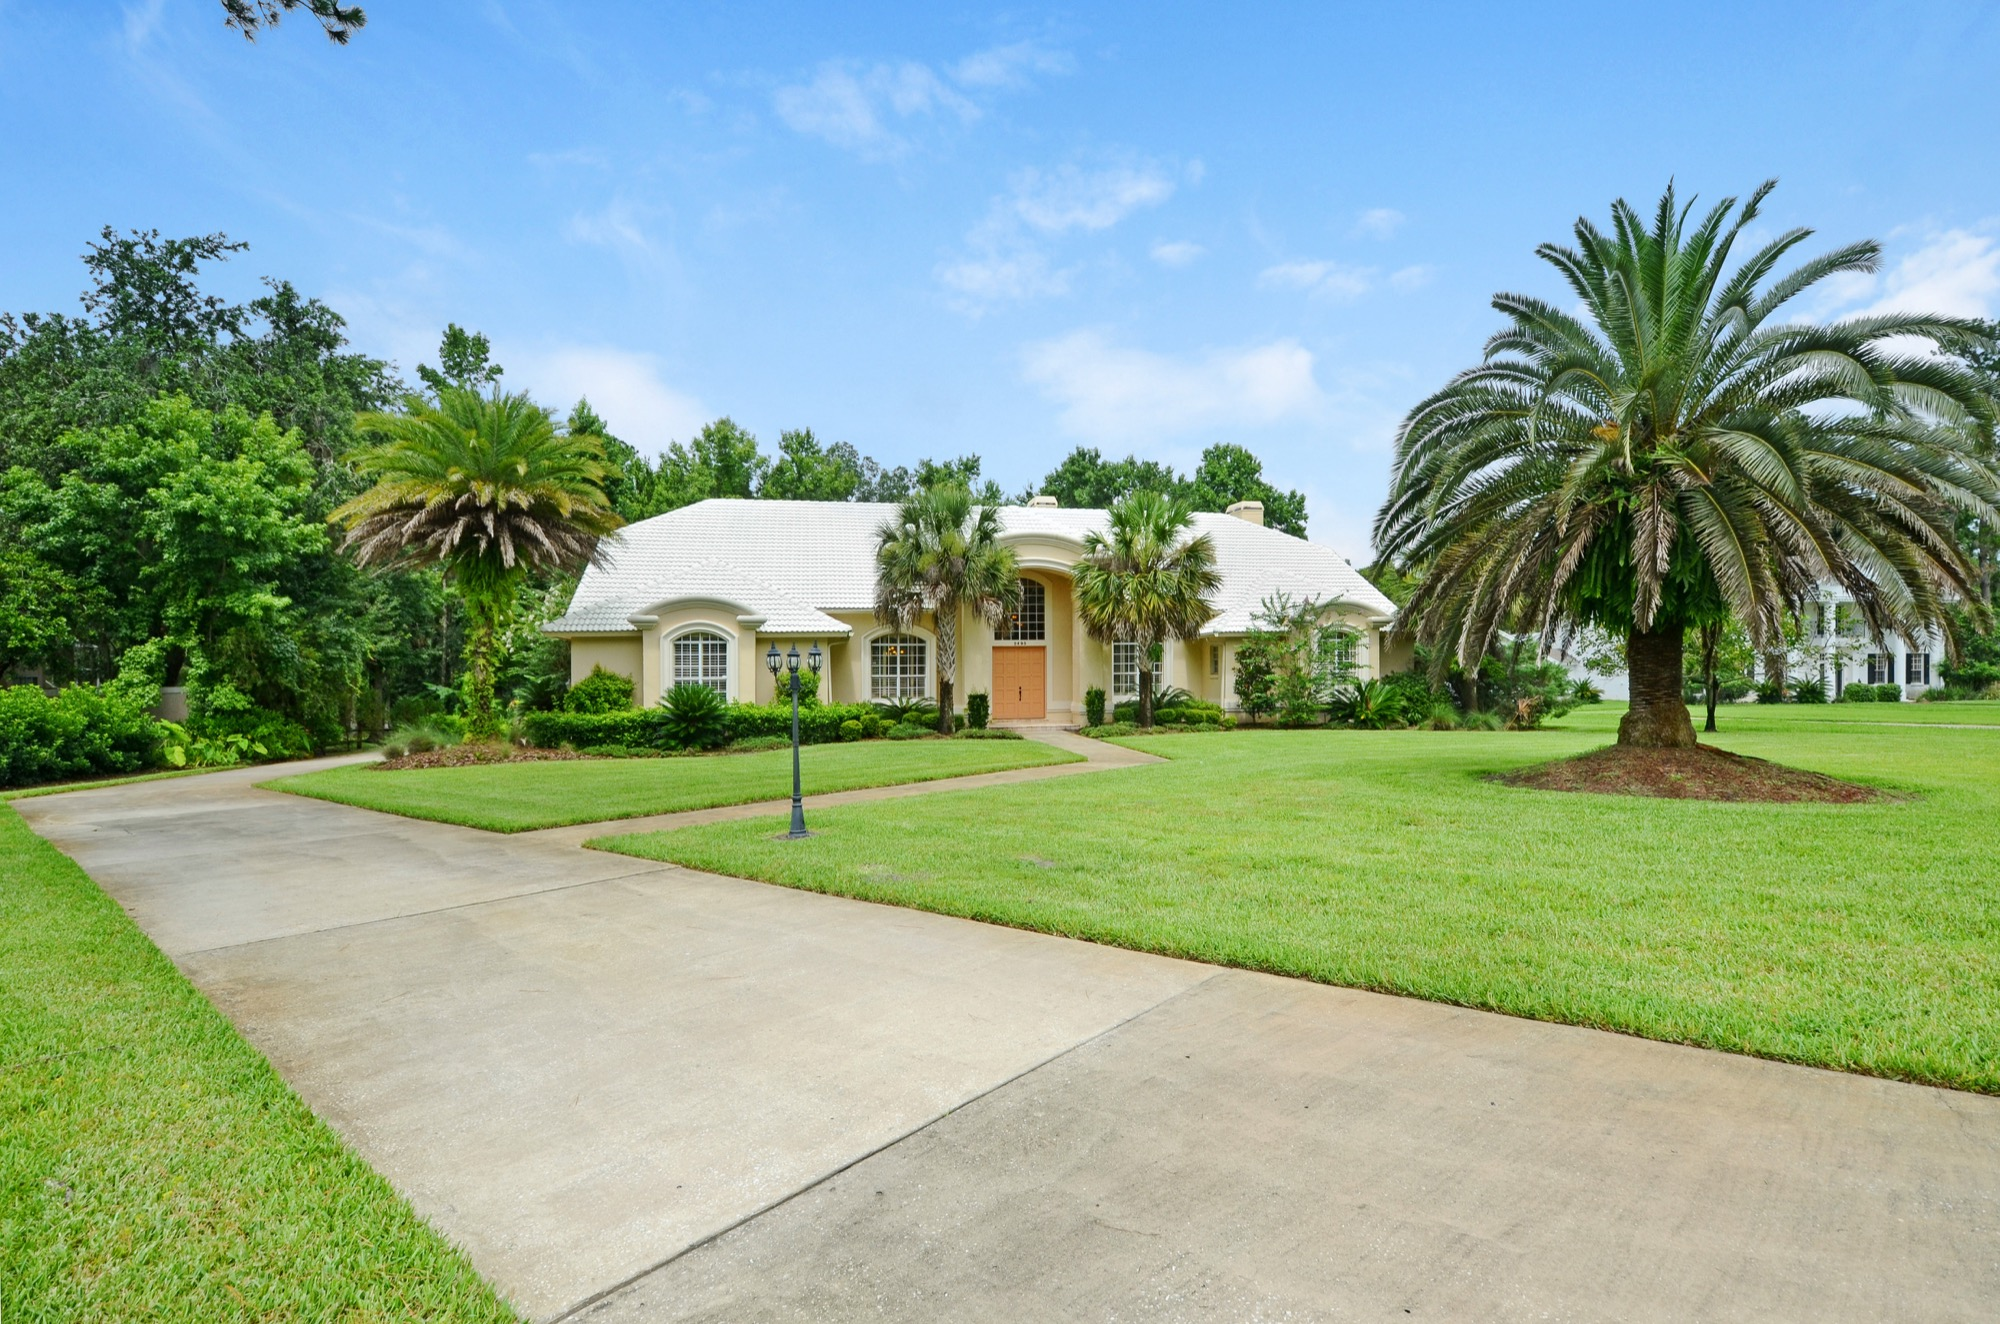 2493 River Tree Cir Sanford FL, 32771